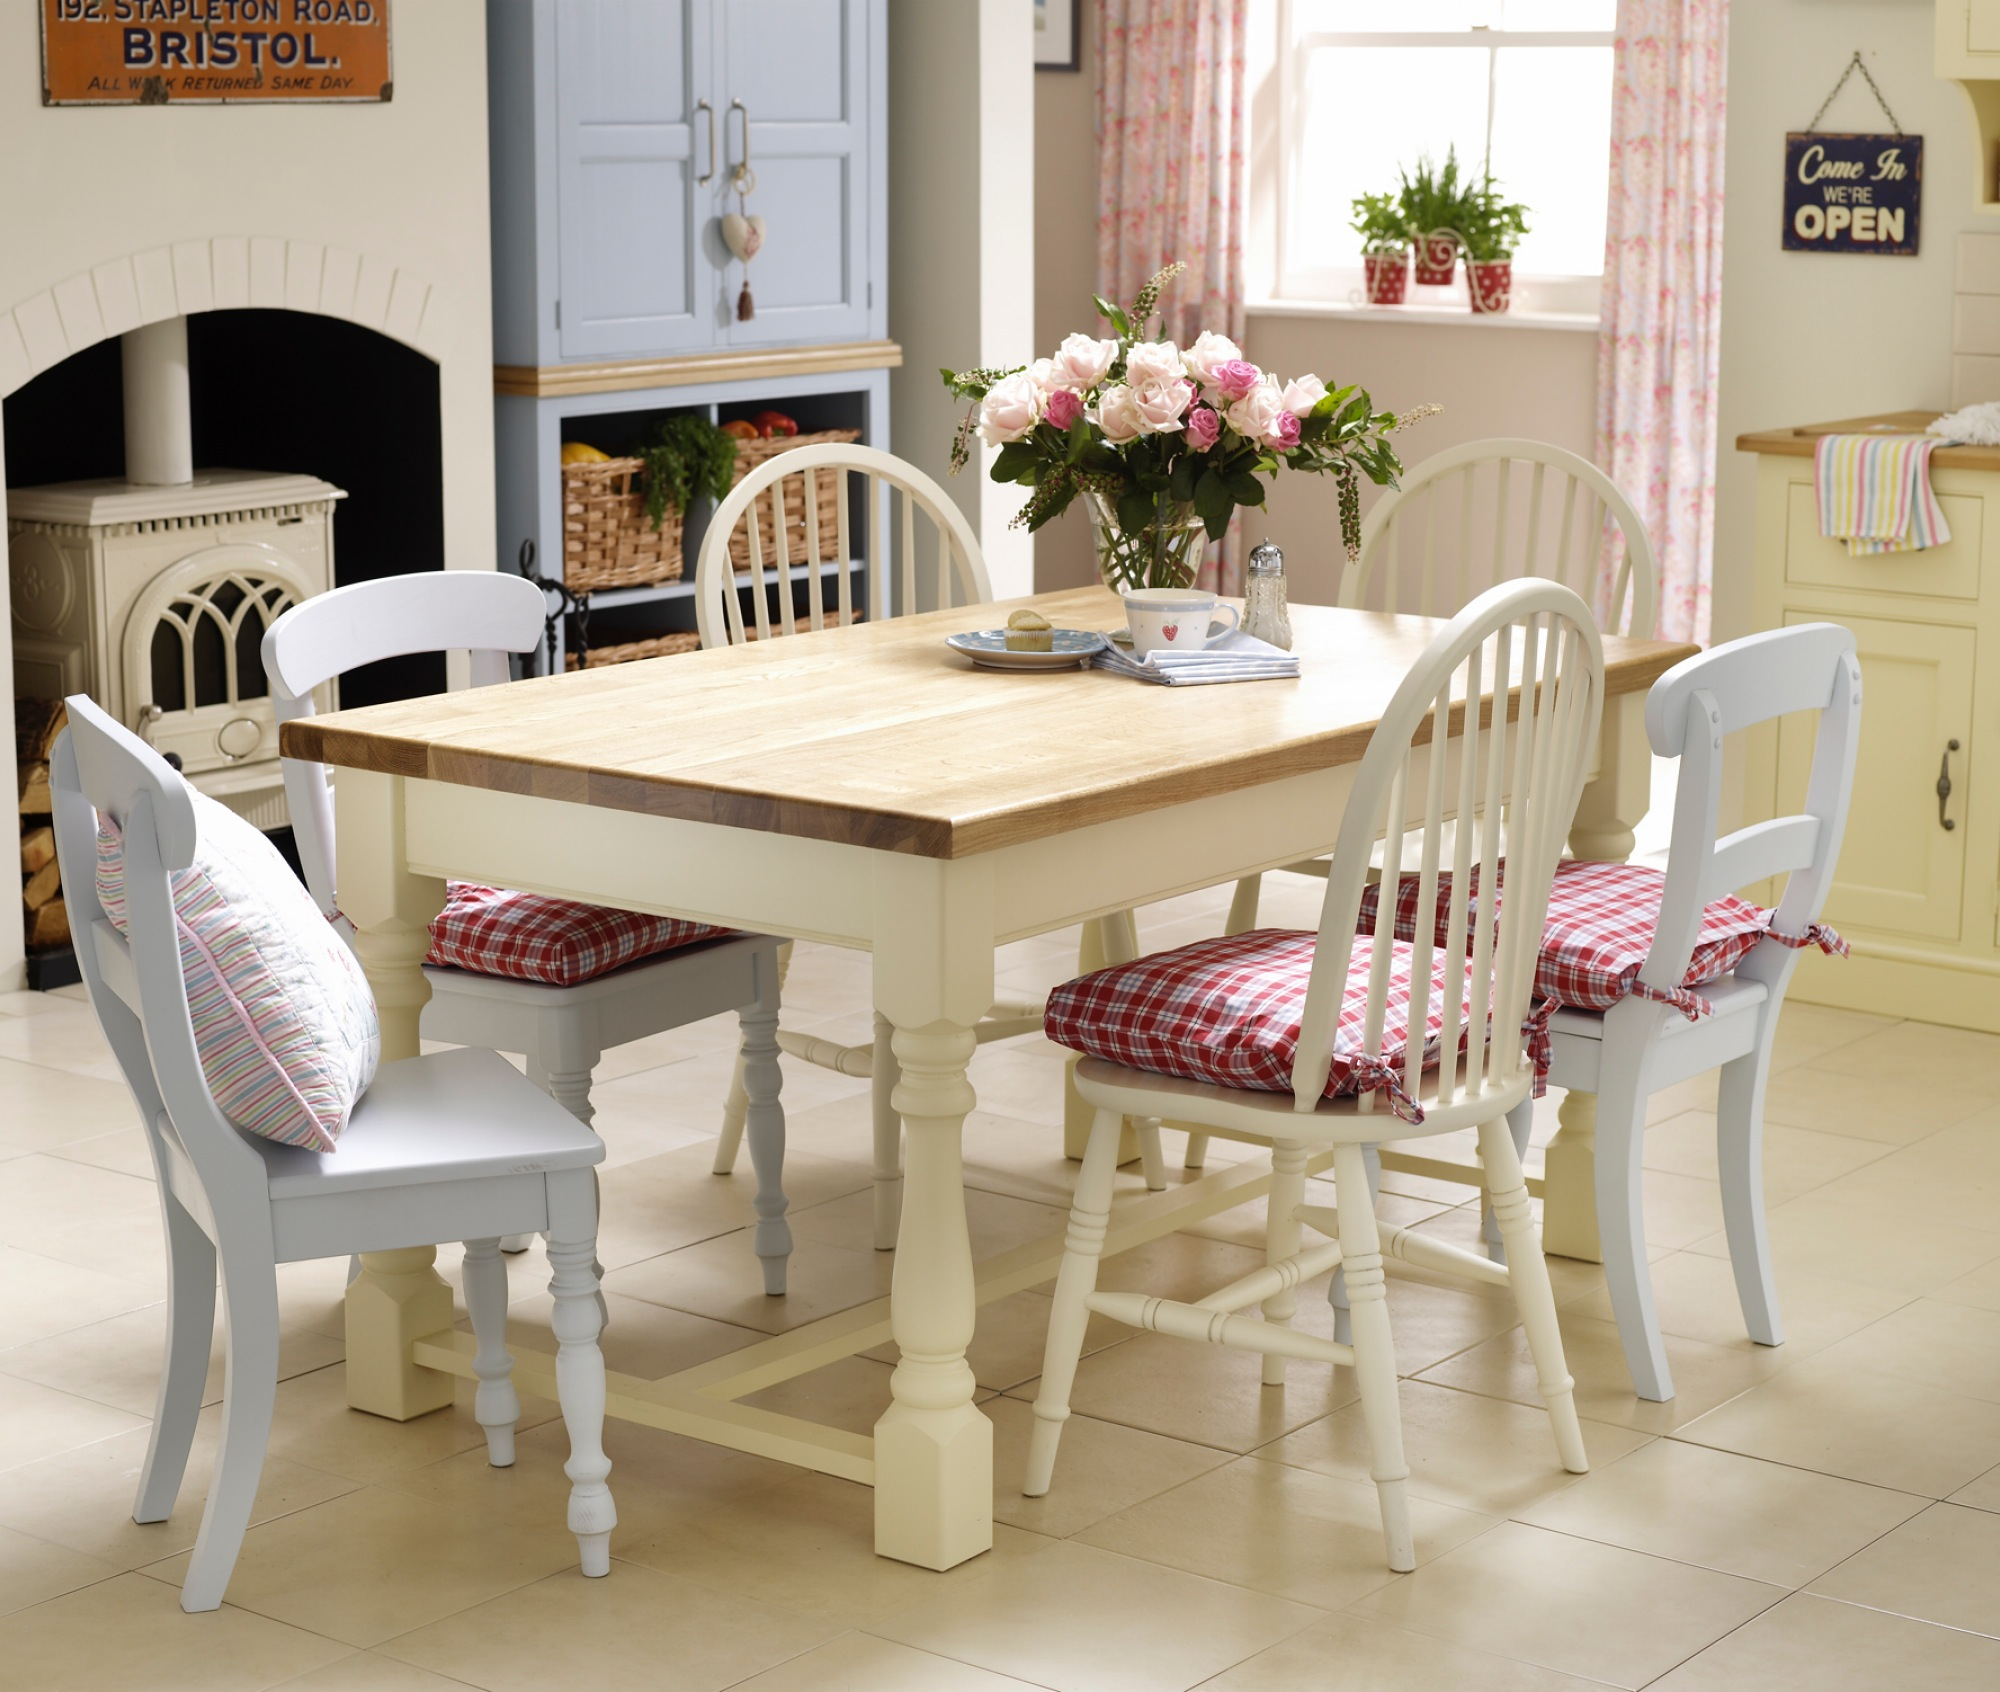 Village Green Chatsworth Oak Table And A Selection Of Painted Chairs